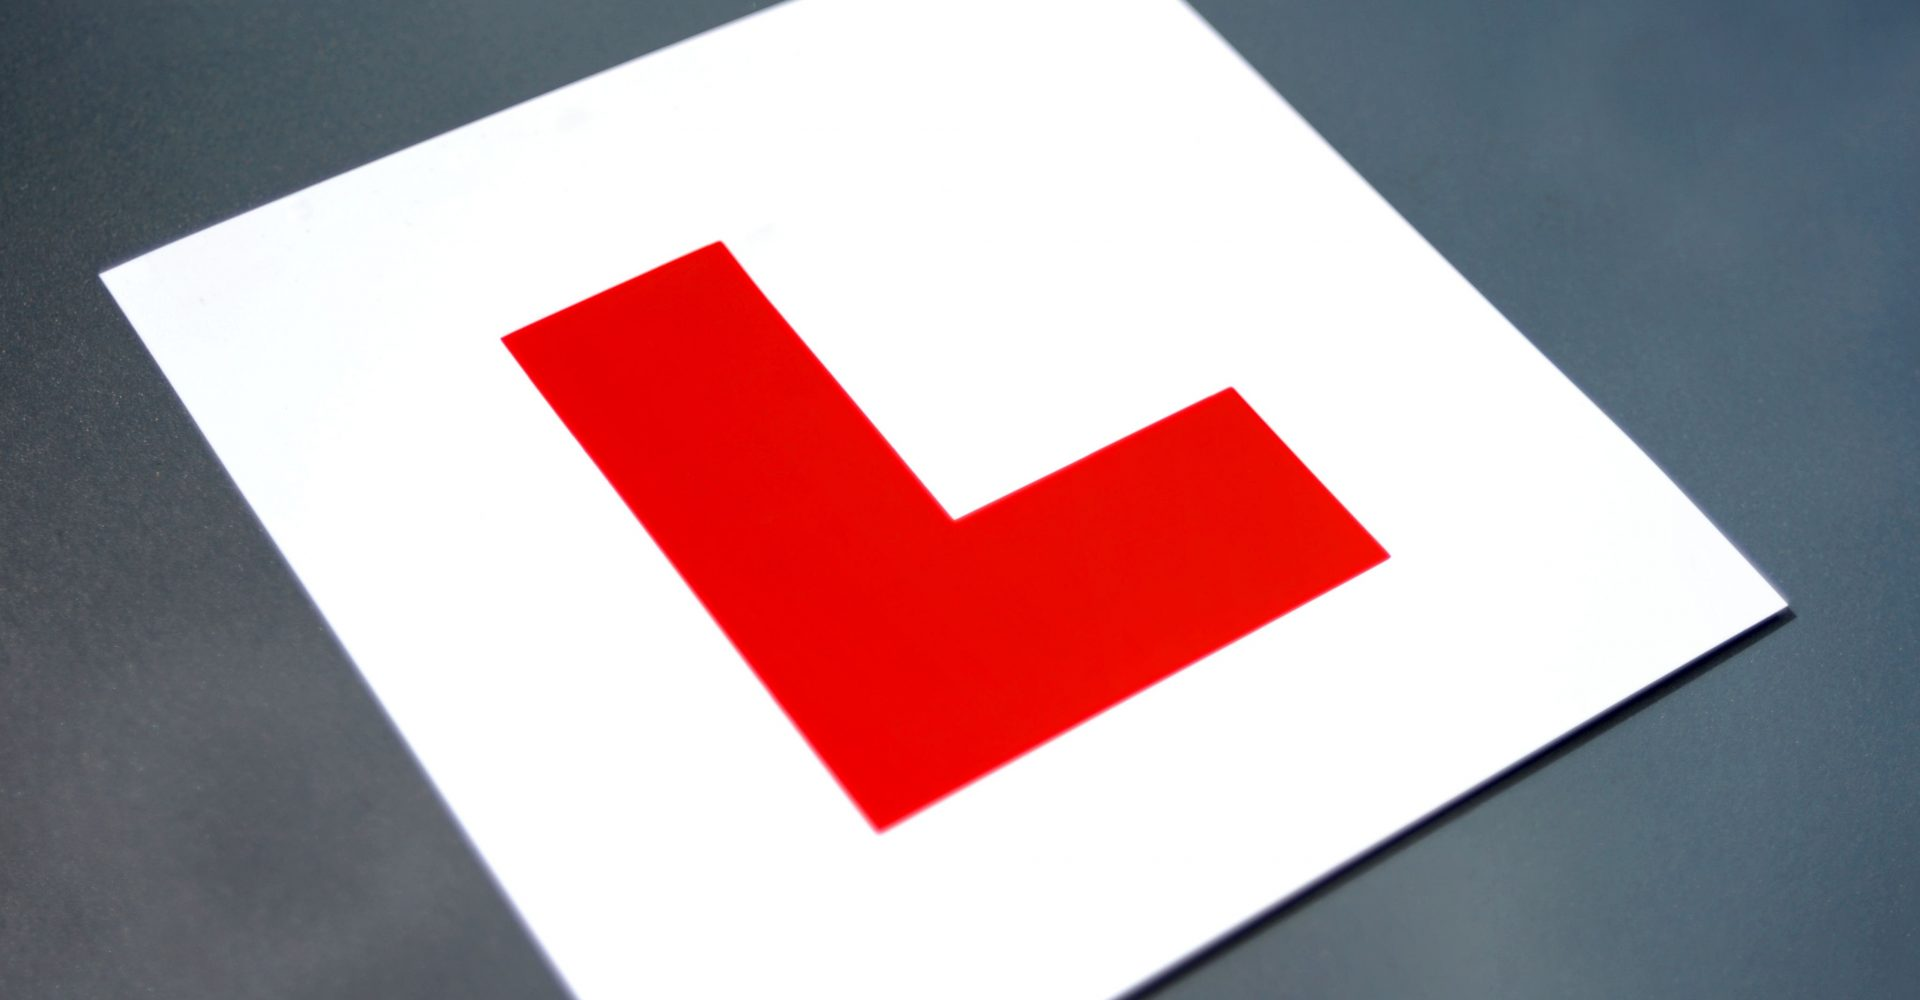 Driving lessons and tests to resume in England and Wales